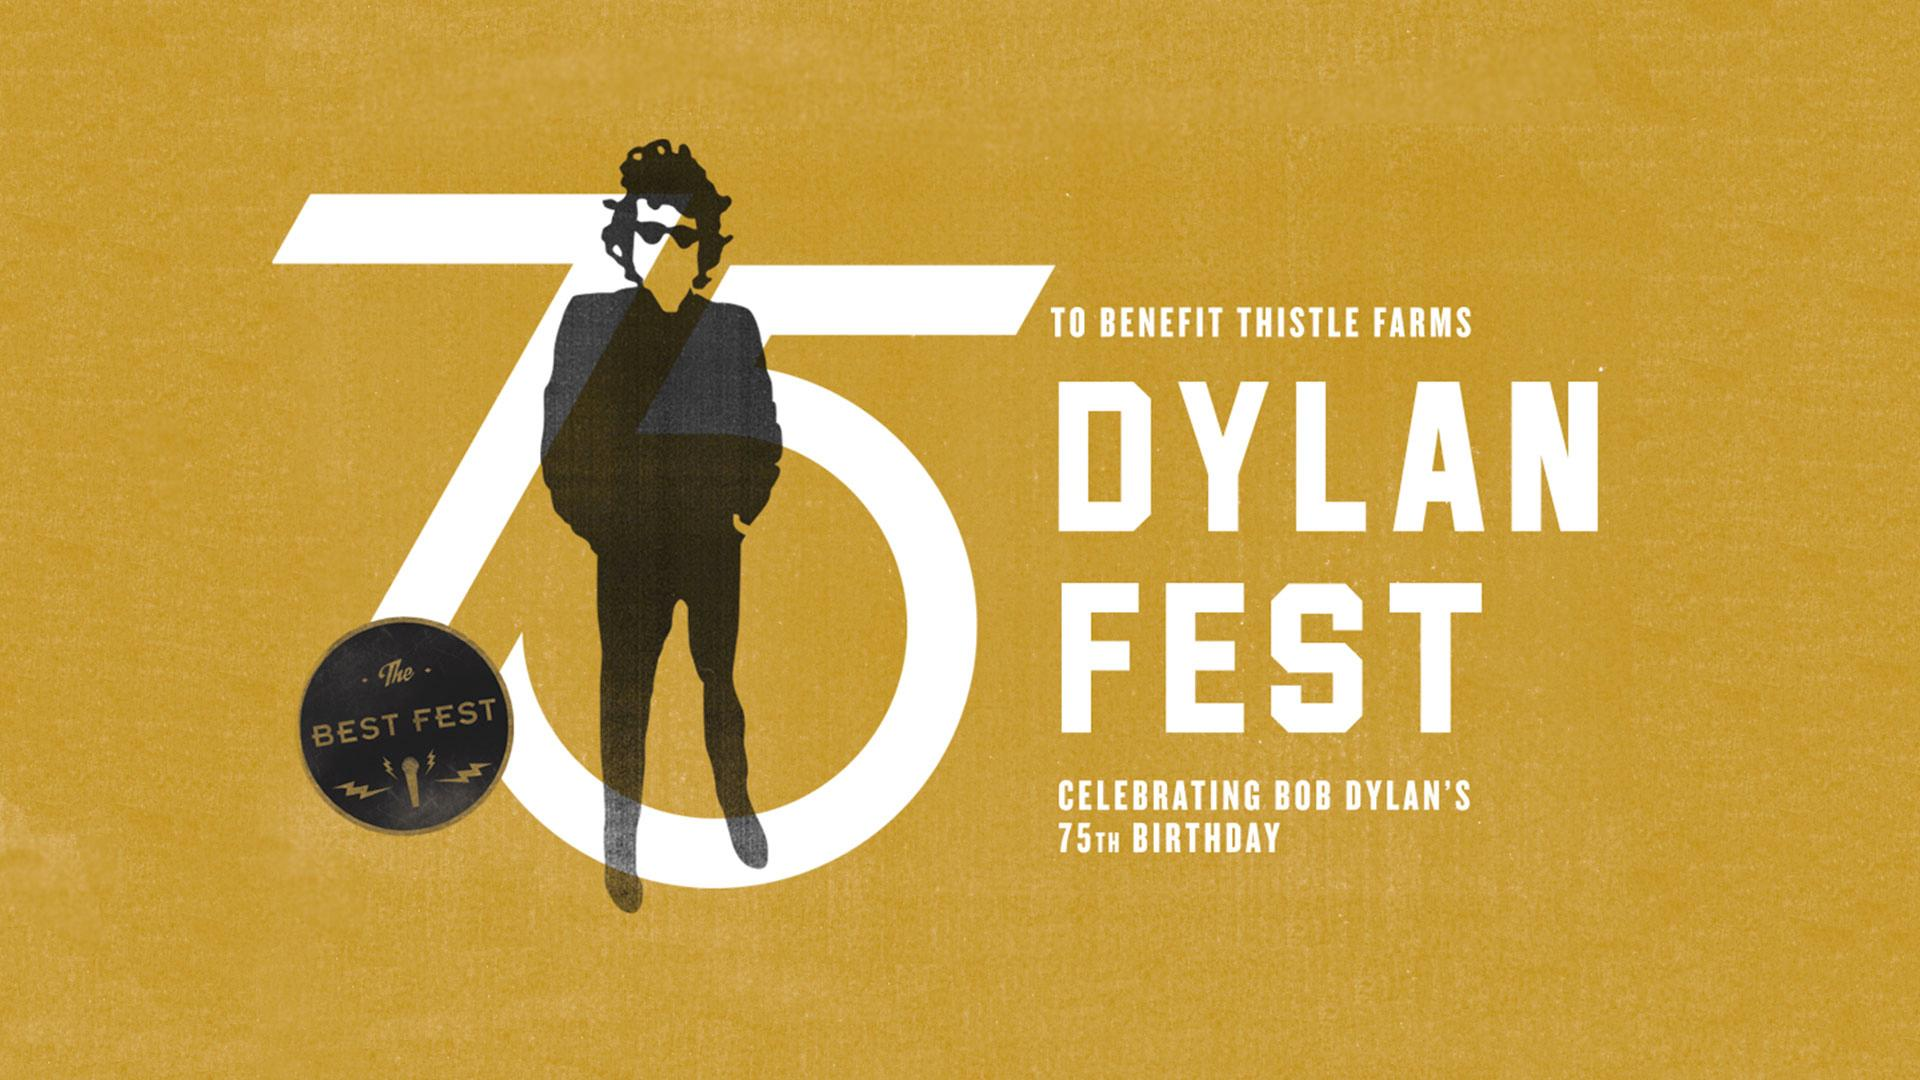 Skyville Live and Best Fest present Dylan Fest, a 75th Birthday Tribute